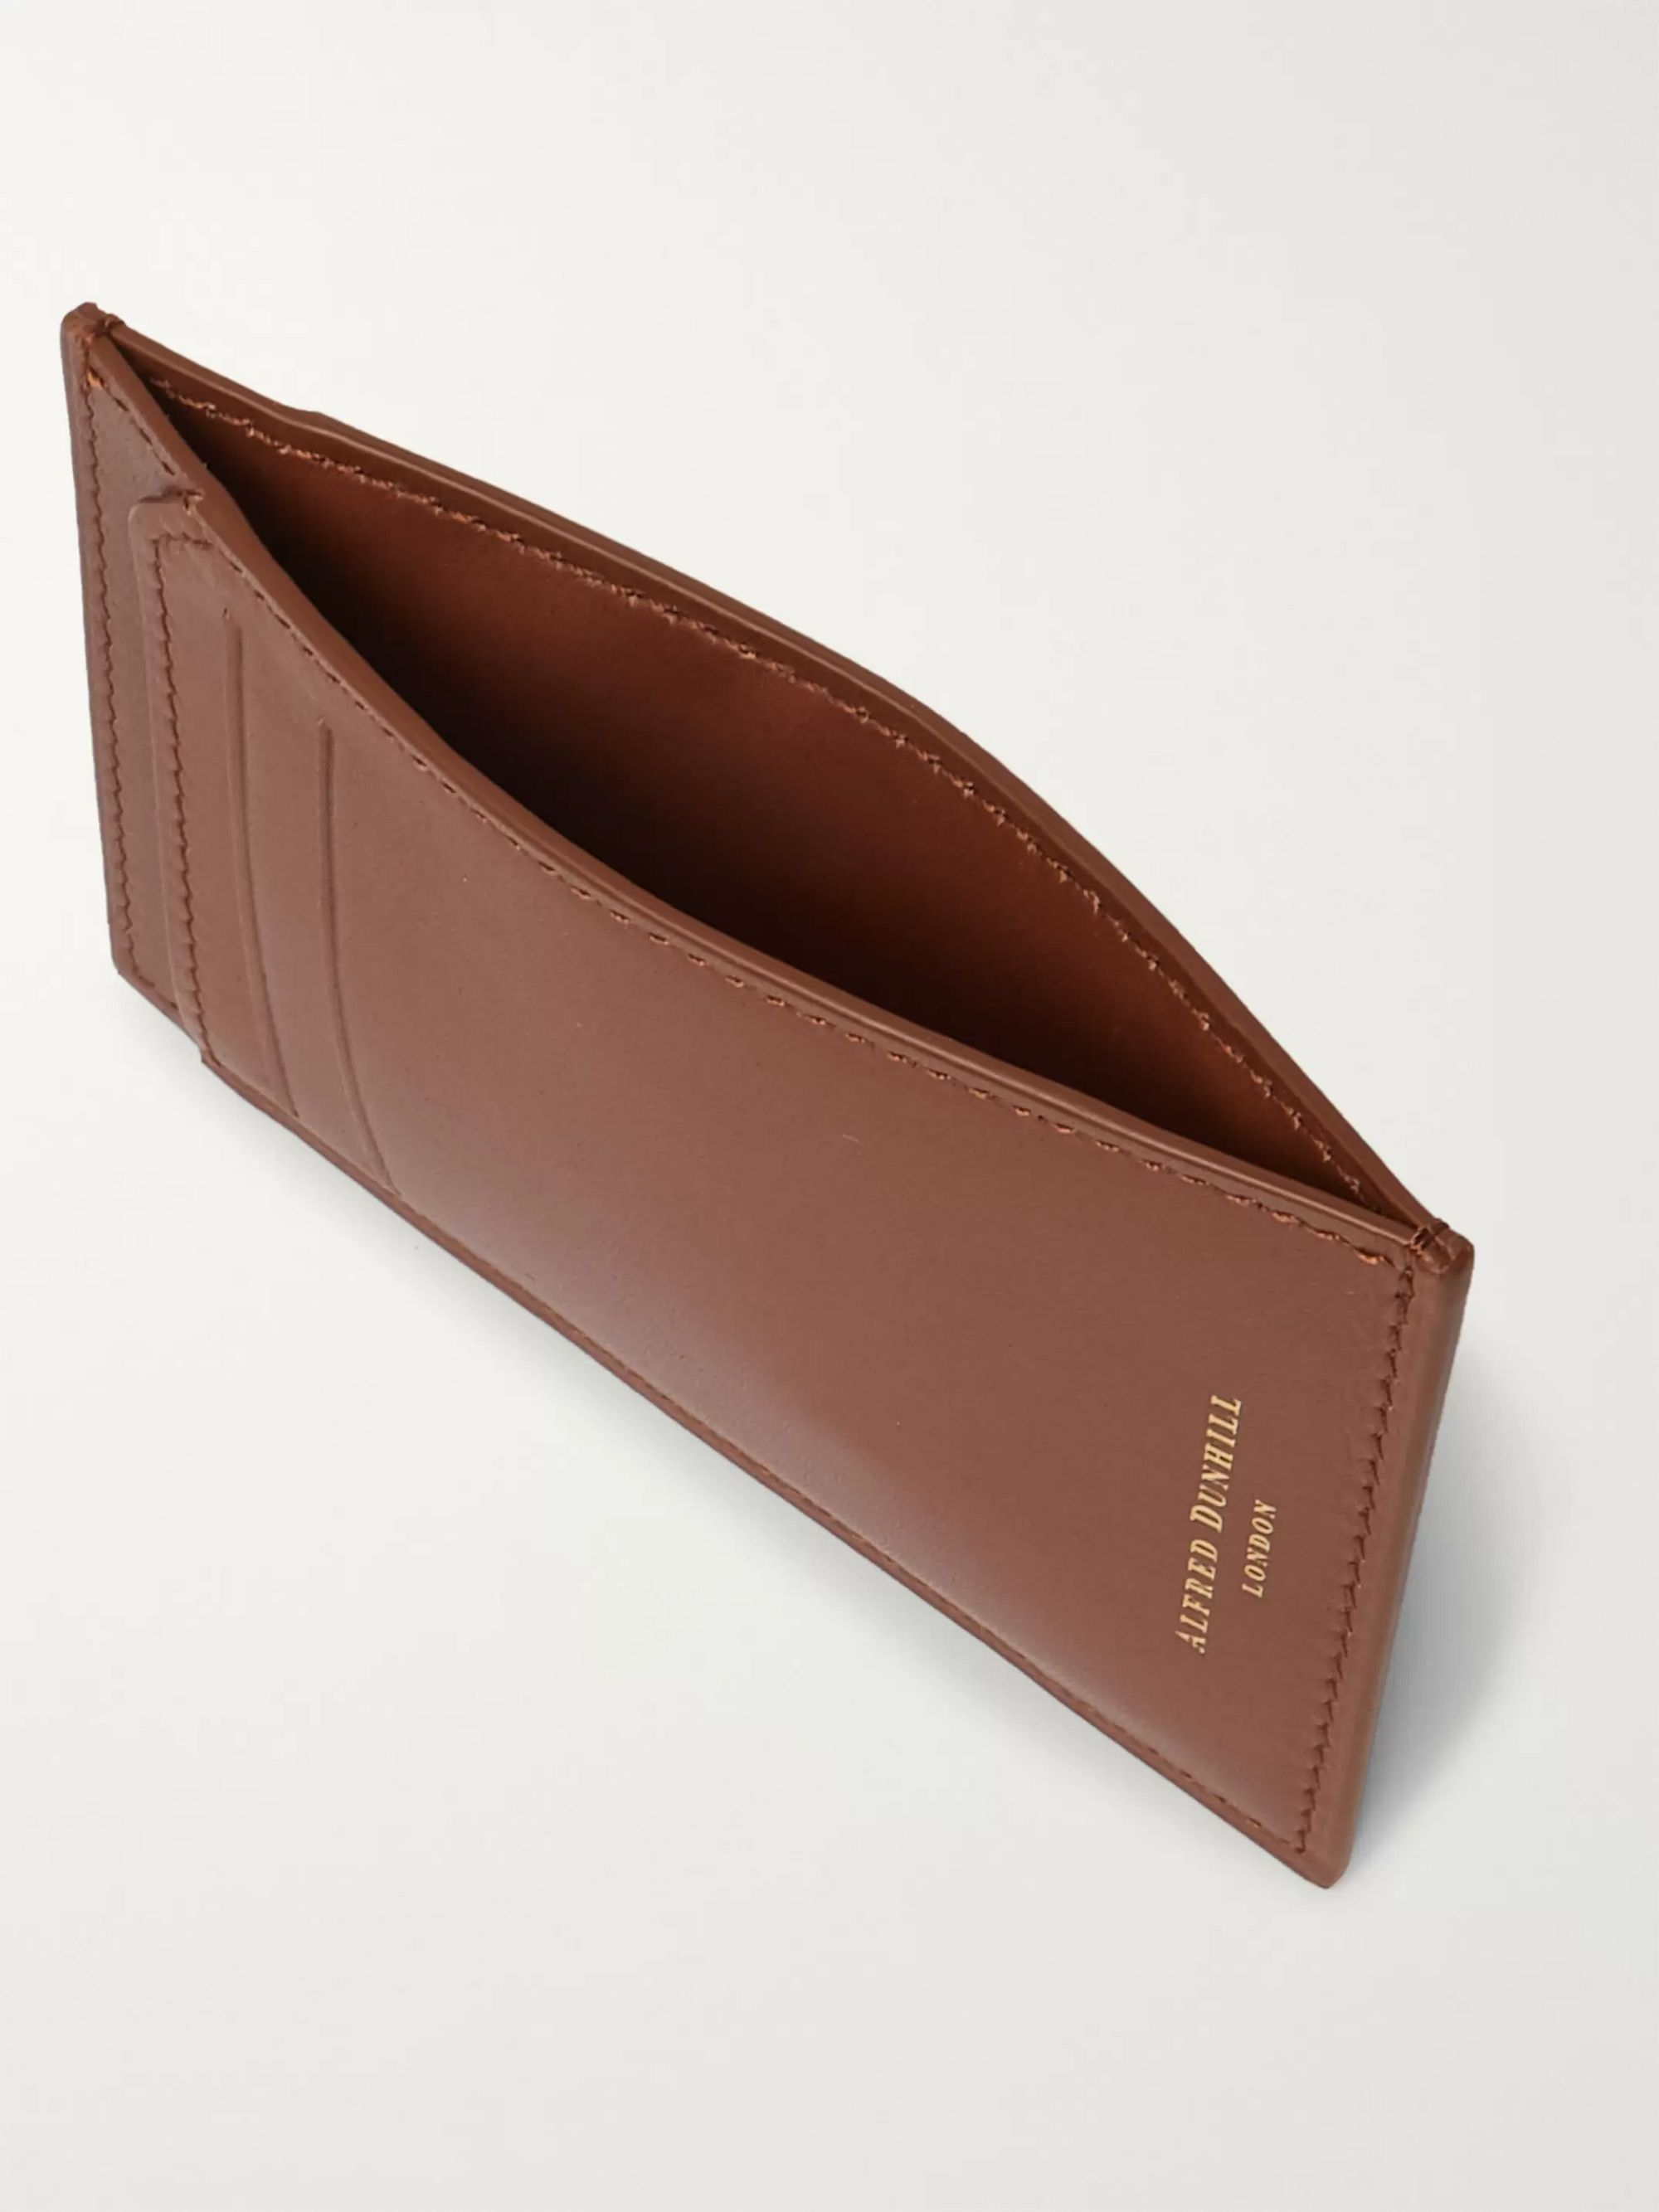 Dunhill Leather Cardholder